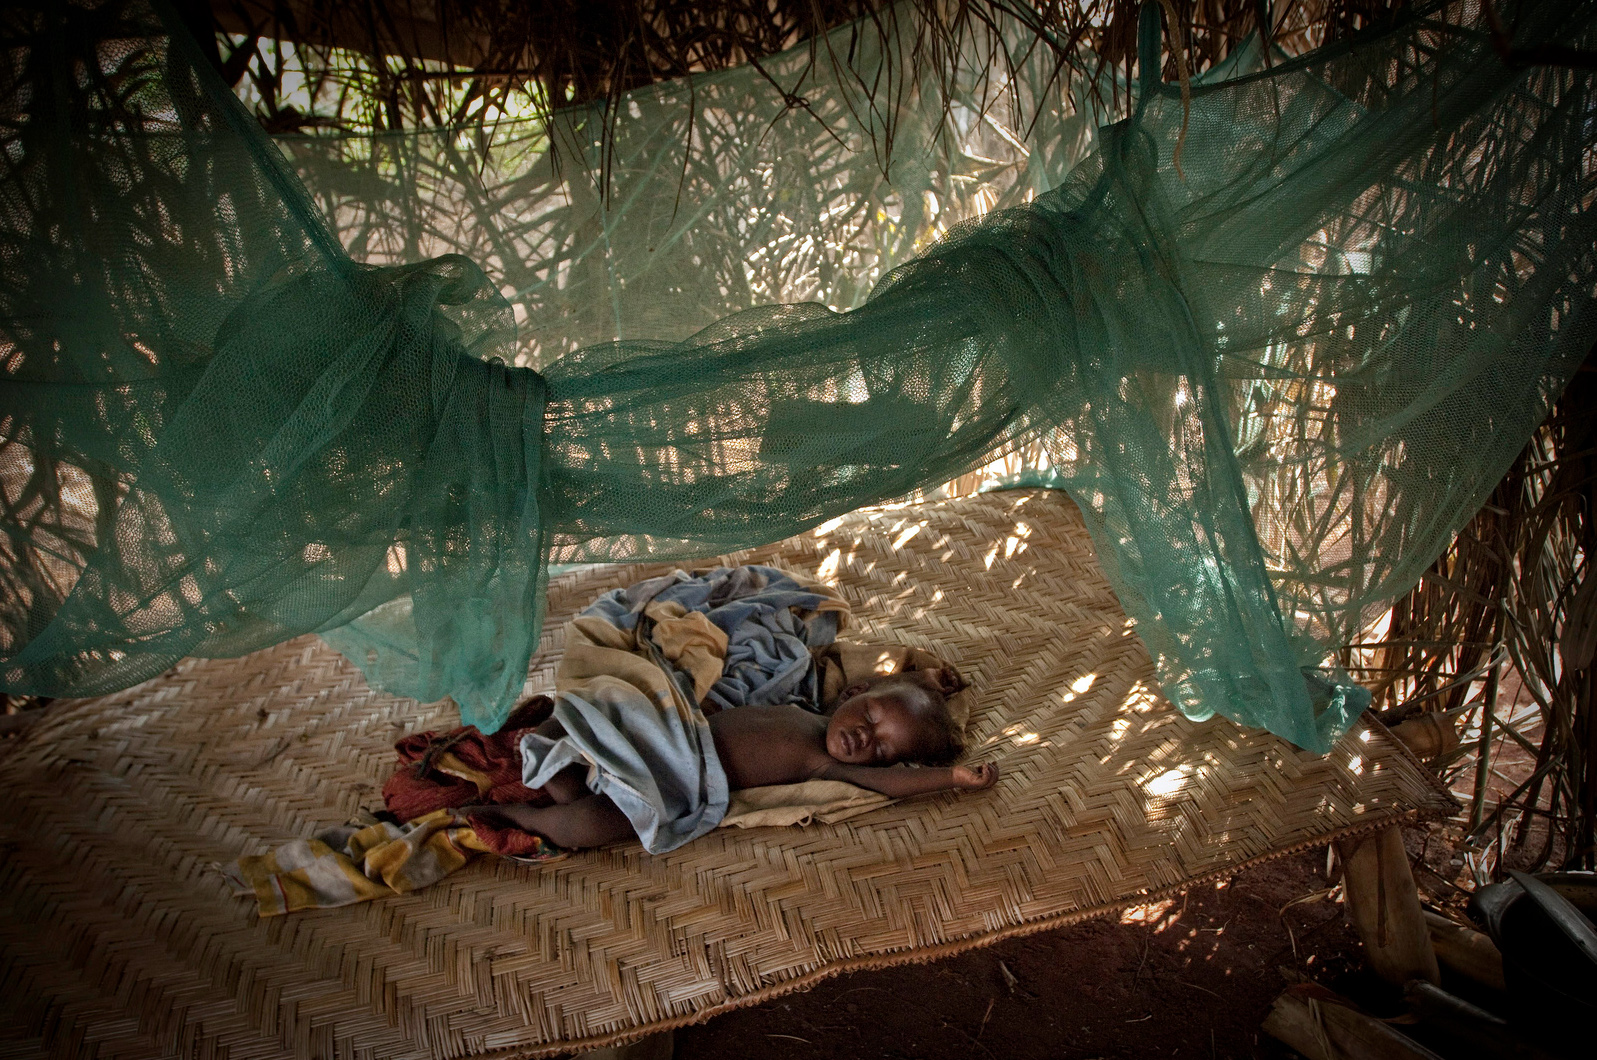 A baby sleeps protected by mosquito net